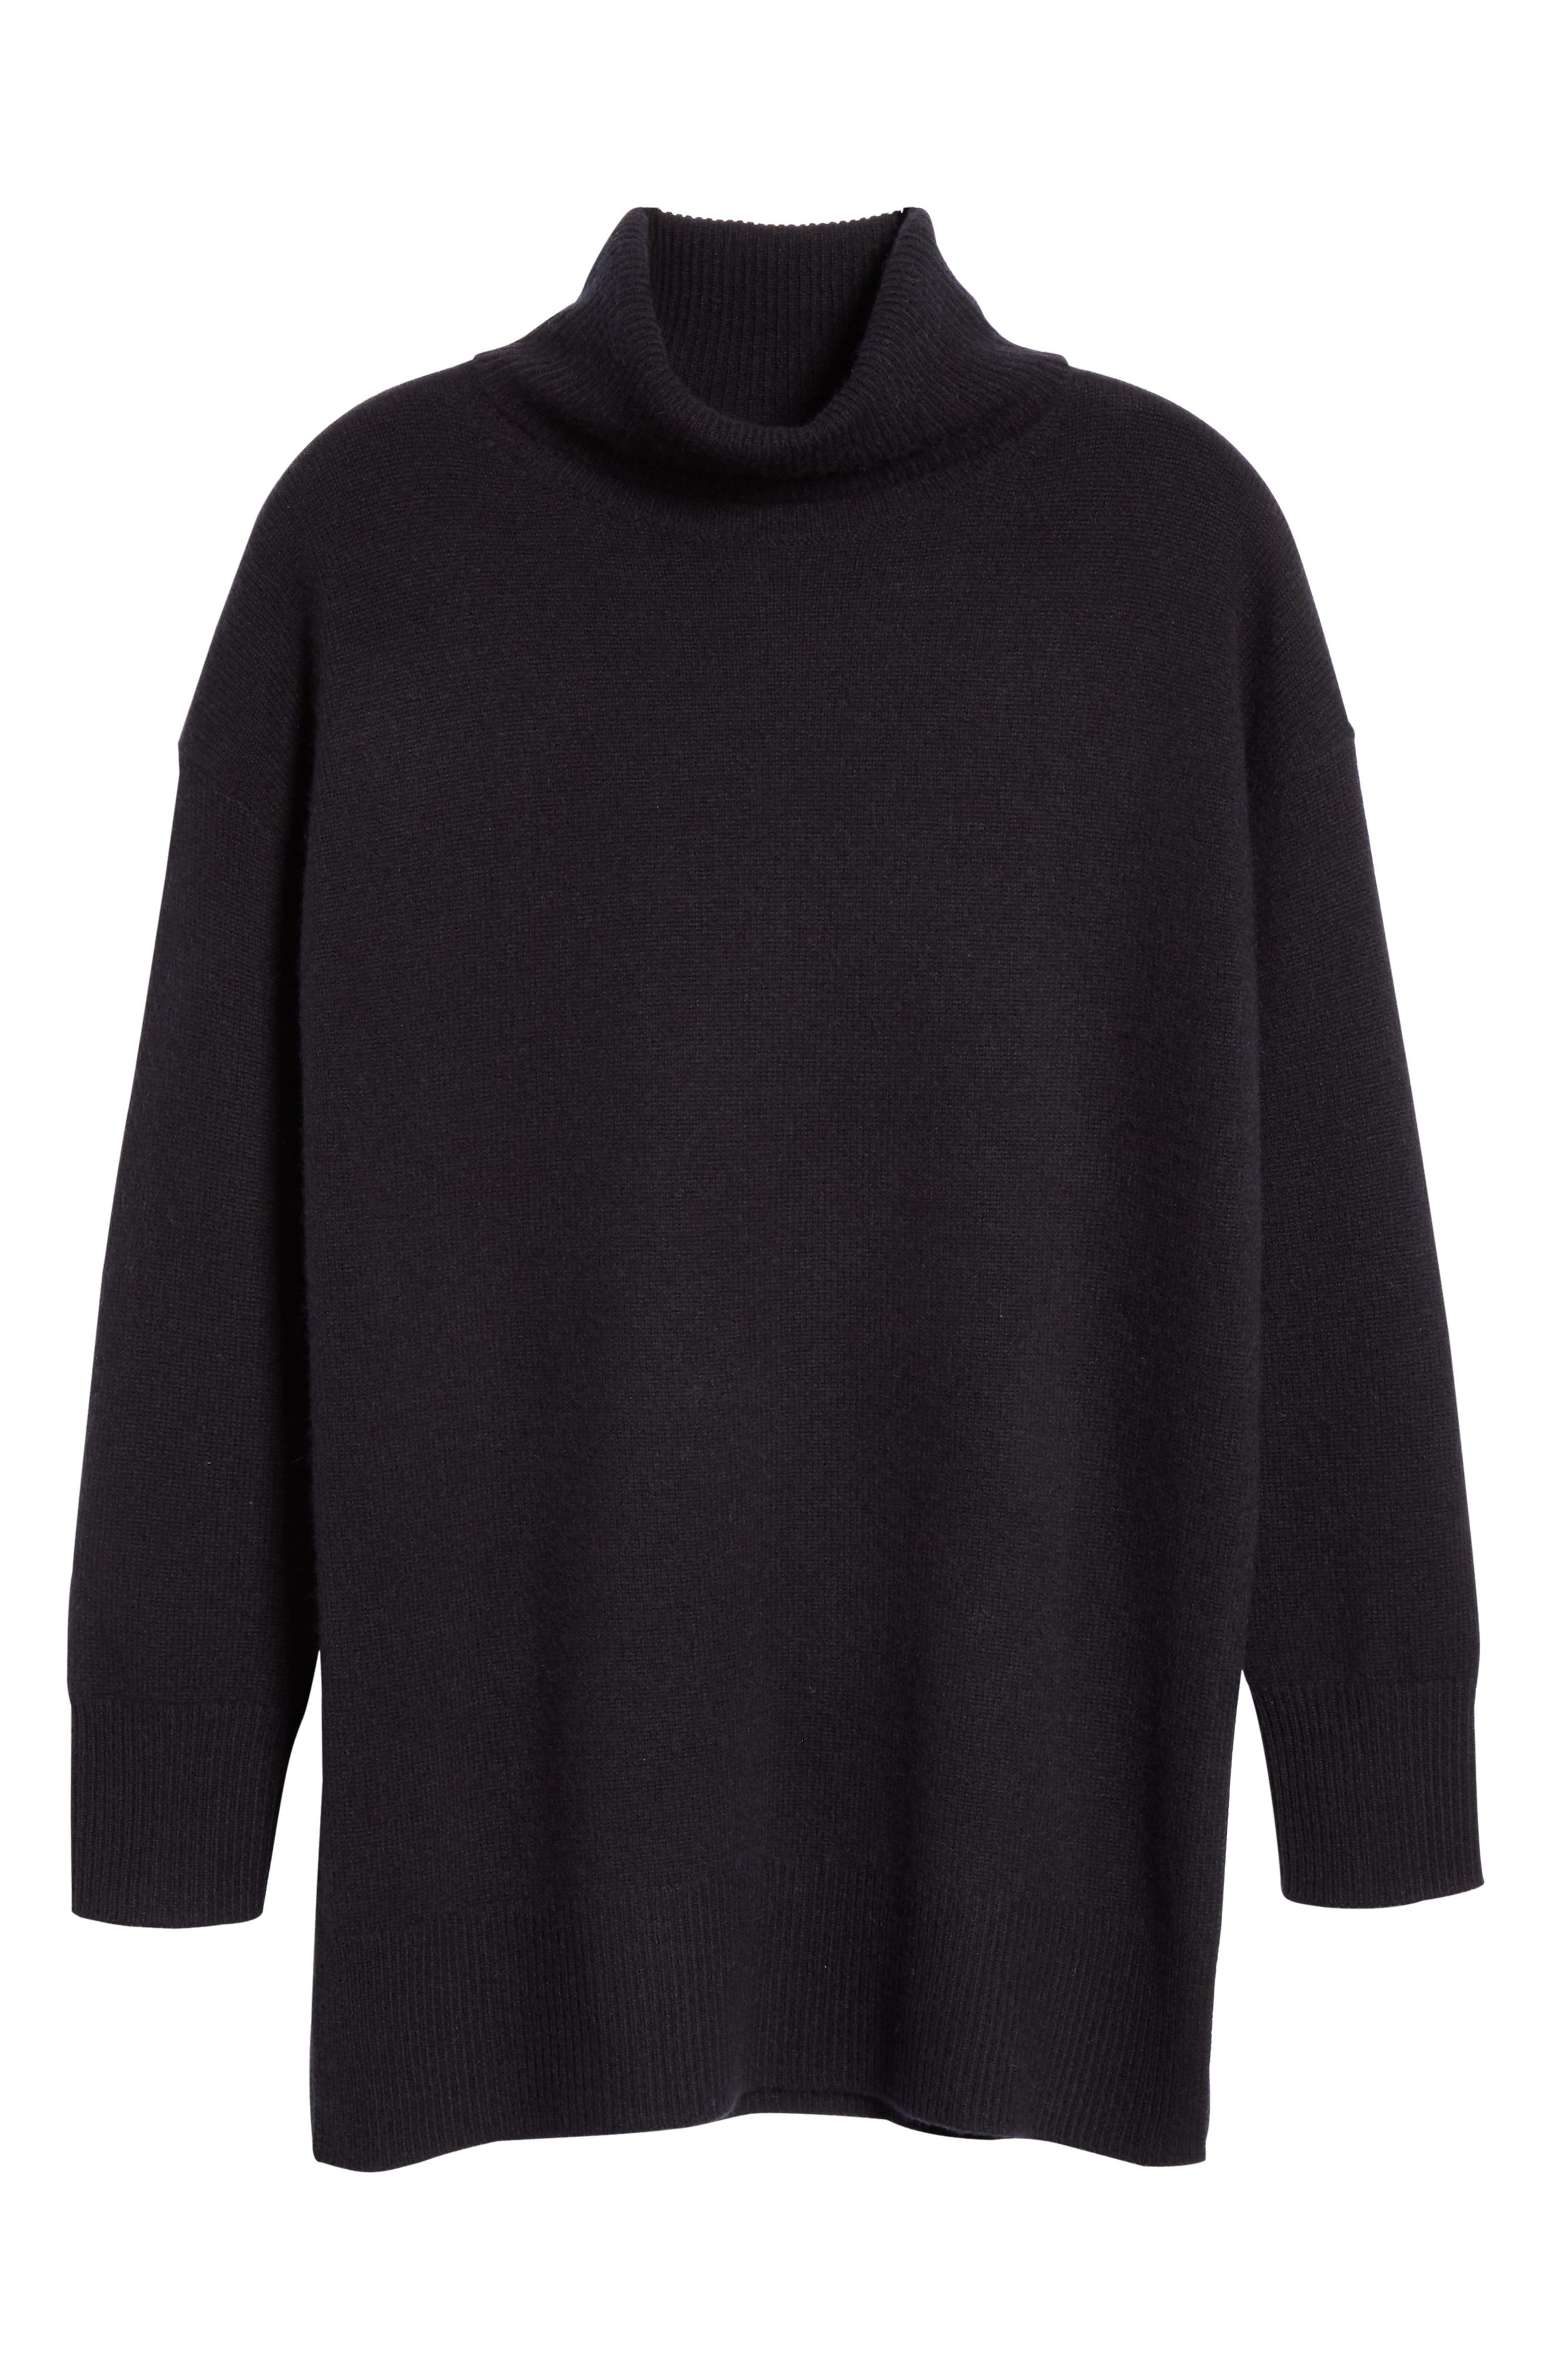 NORDSTROM SIGNATURE,                             Cashmere Turtleneck Pullover,                             Alternate thumbnail 6, color,                             001